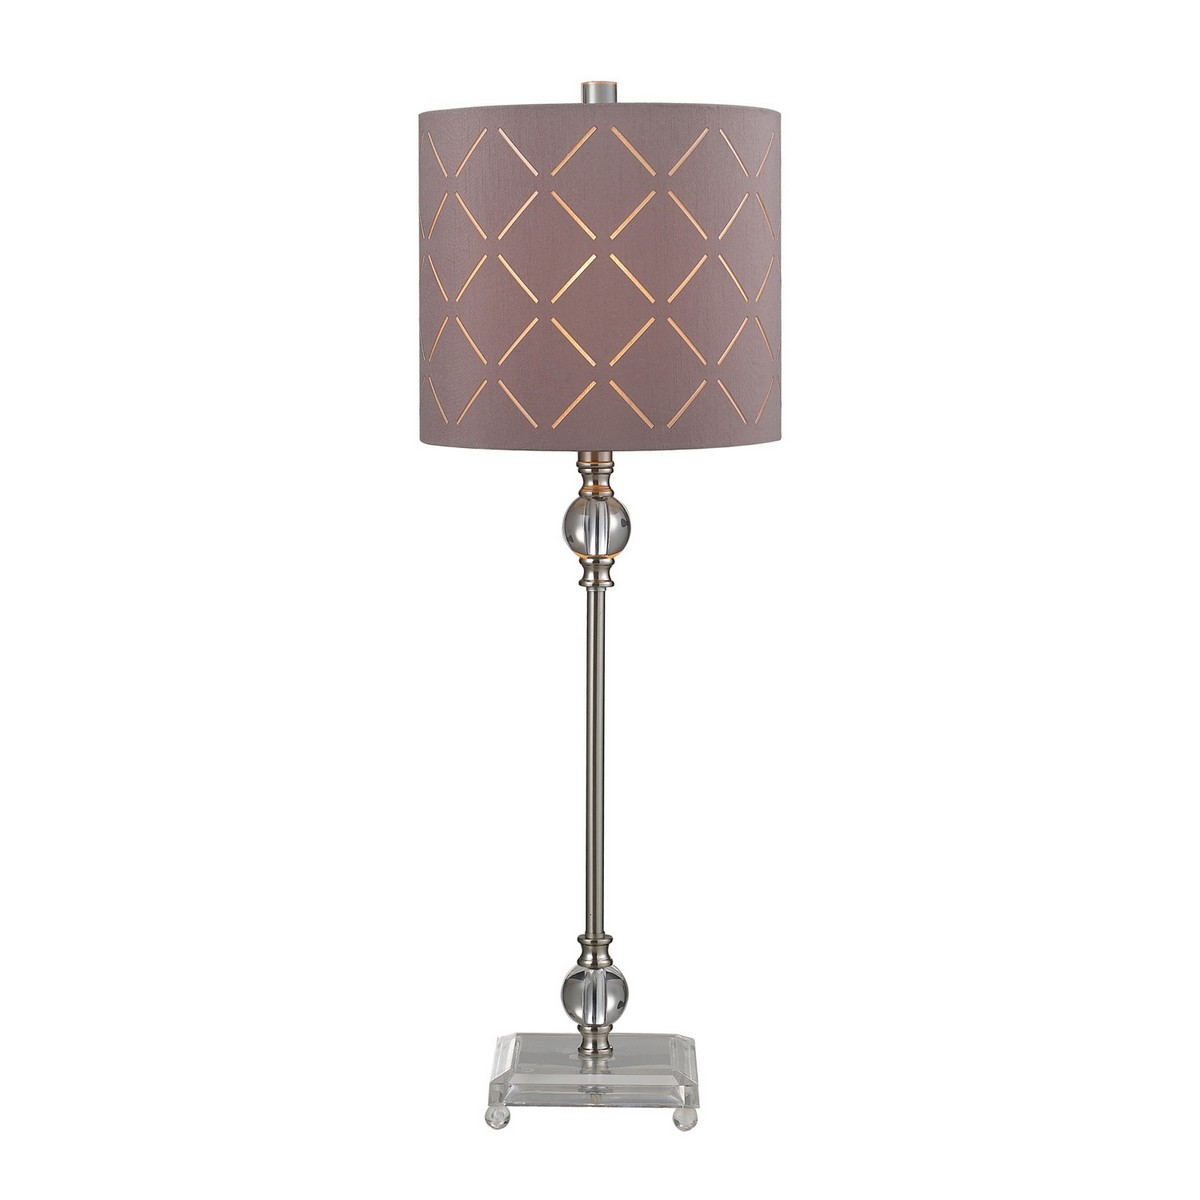 Elk Lighting D144 Table Lamp - Brushed Steel/Clear